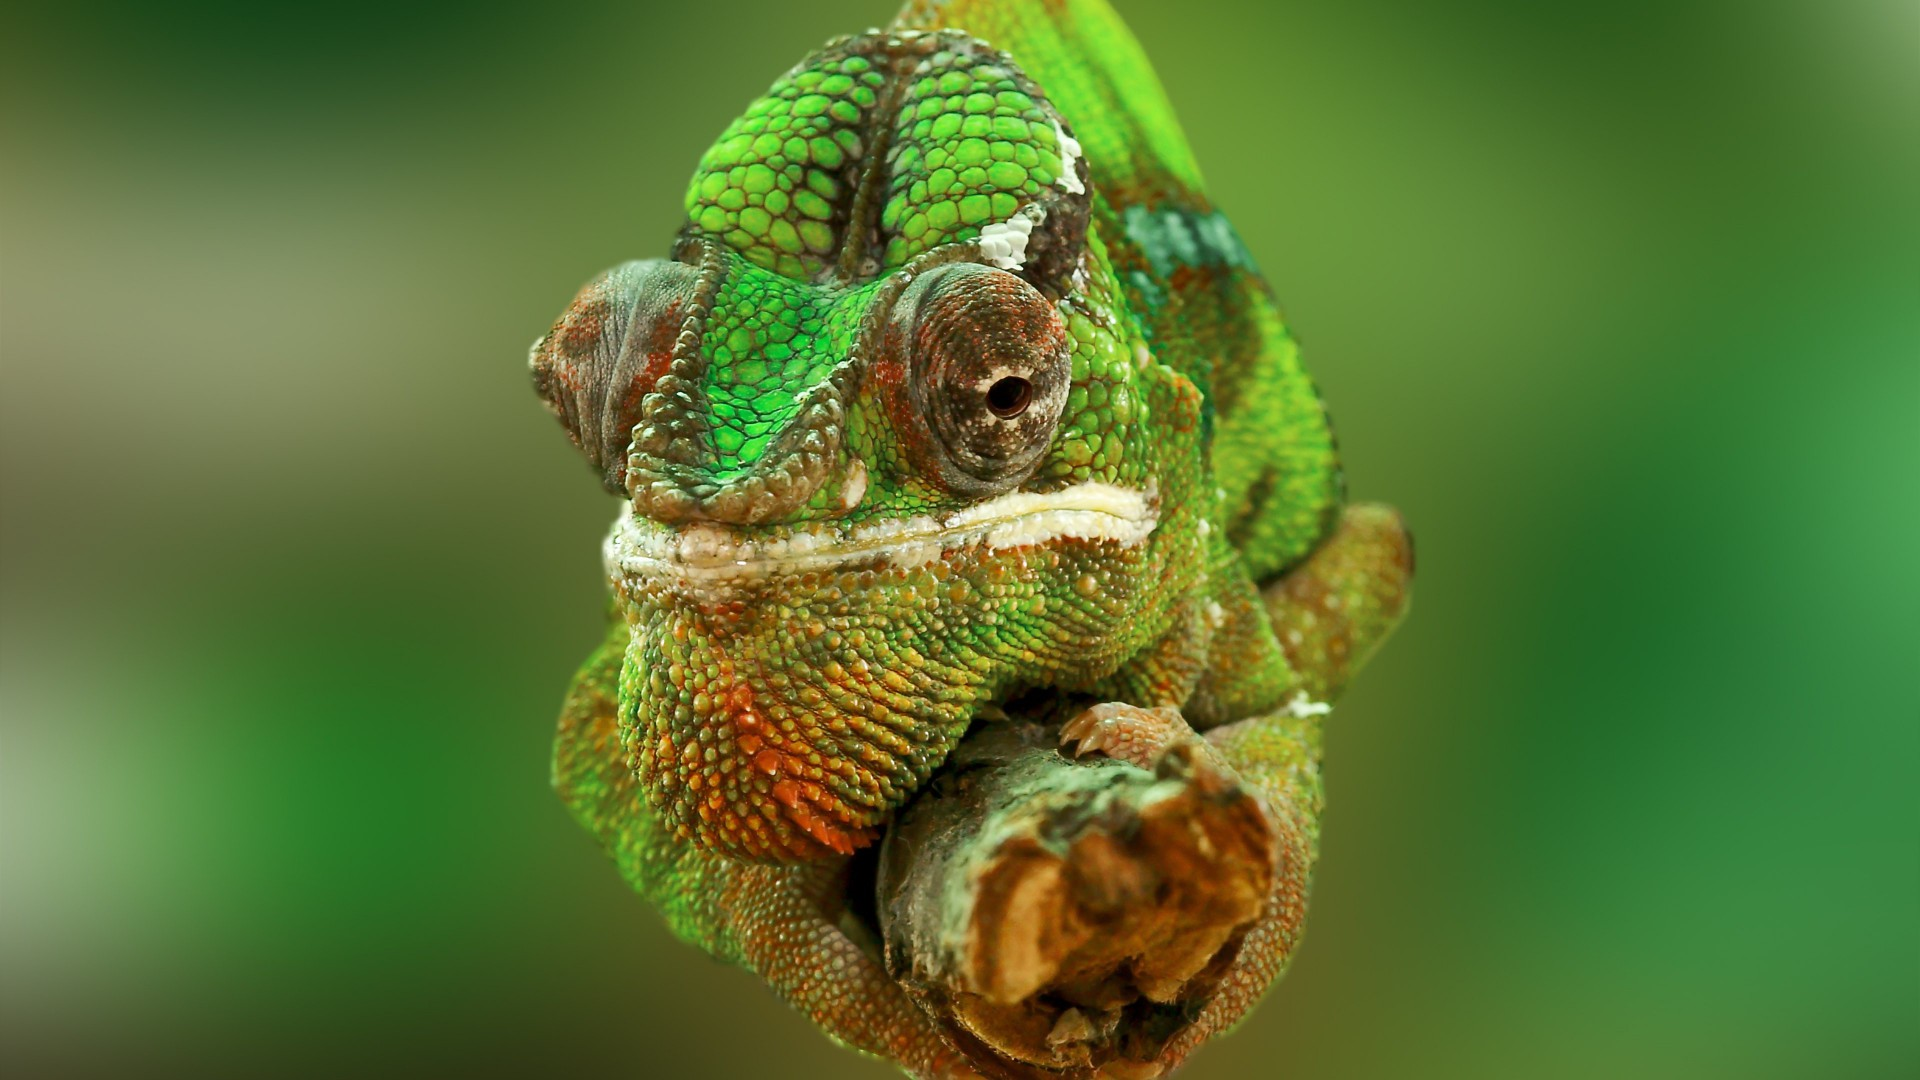 Chameleon Changing Color Animated Chameleon Color Change